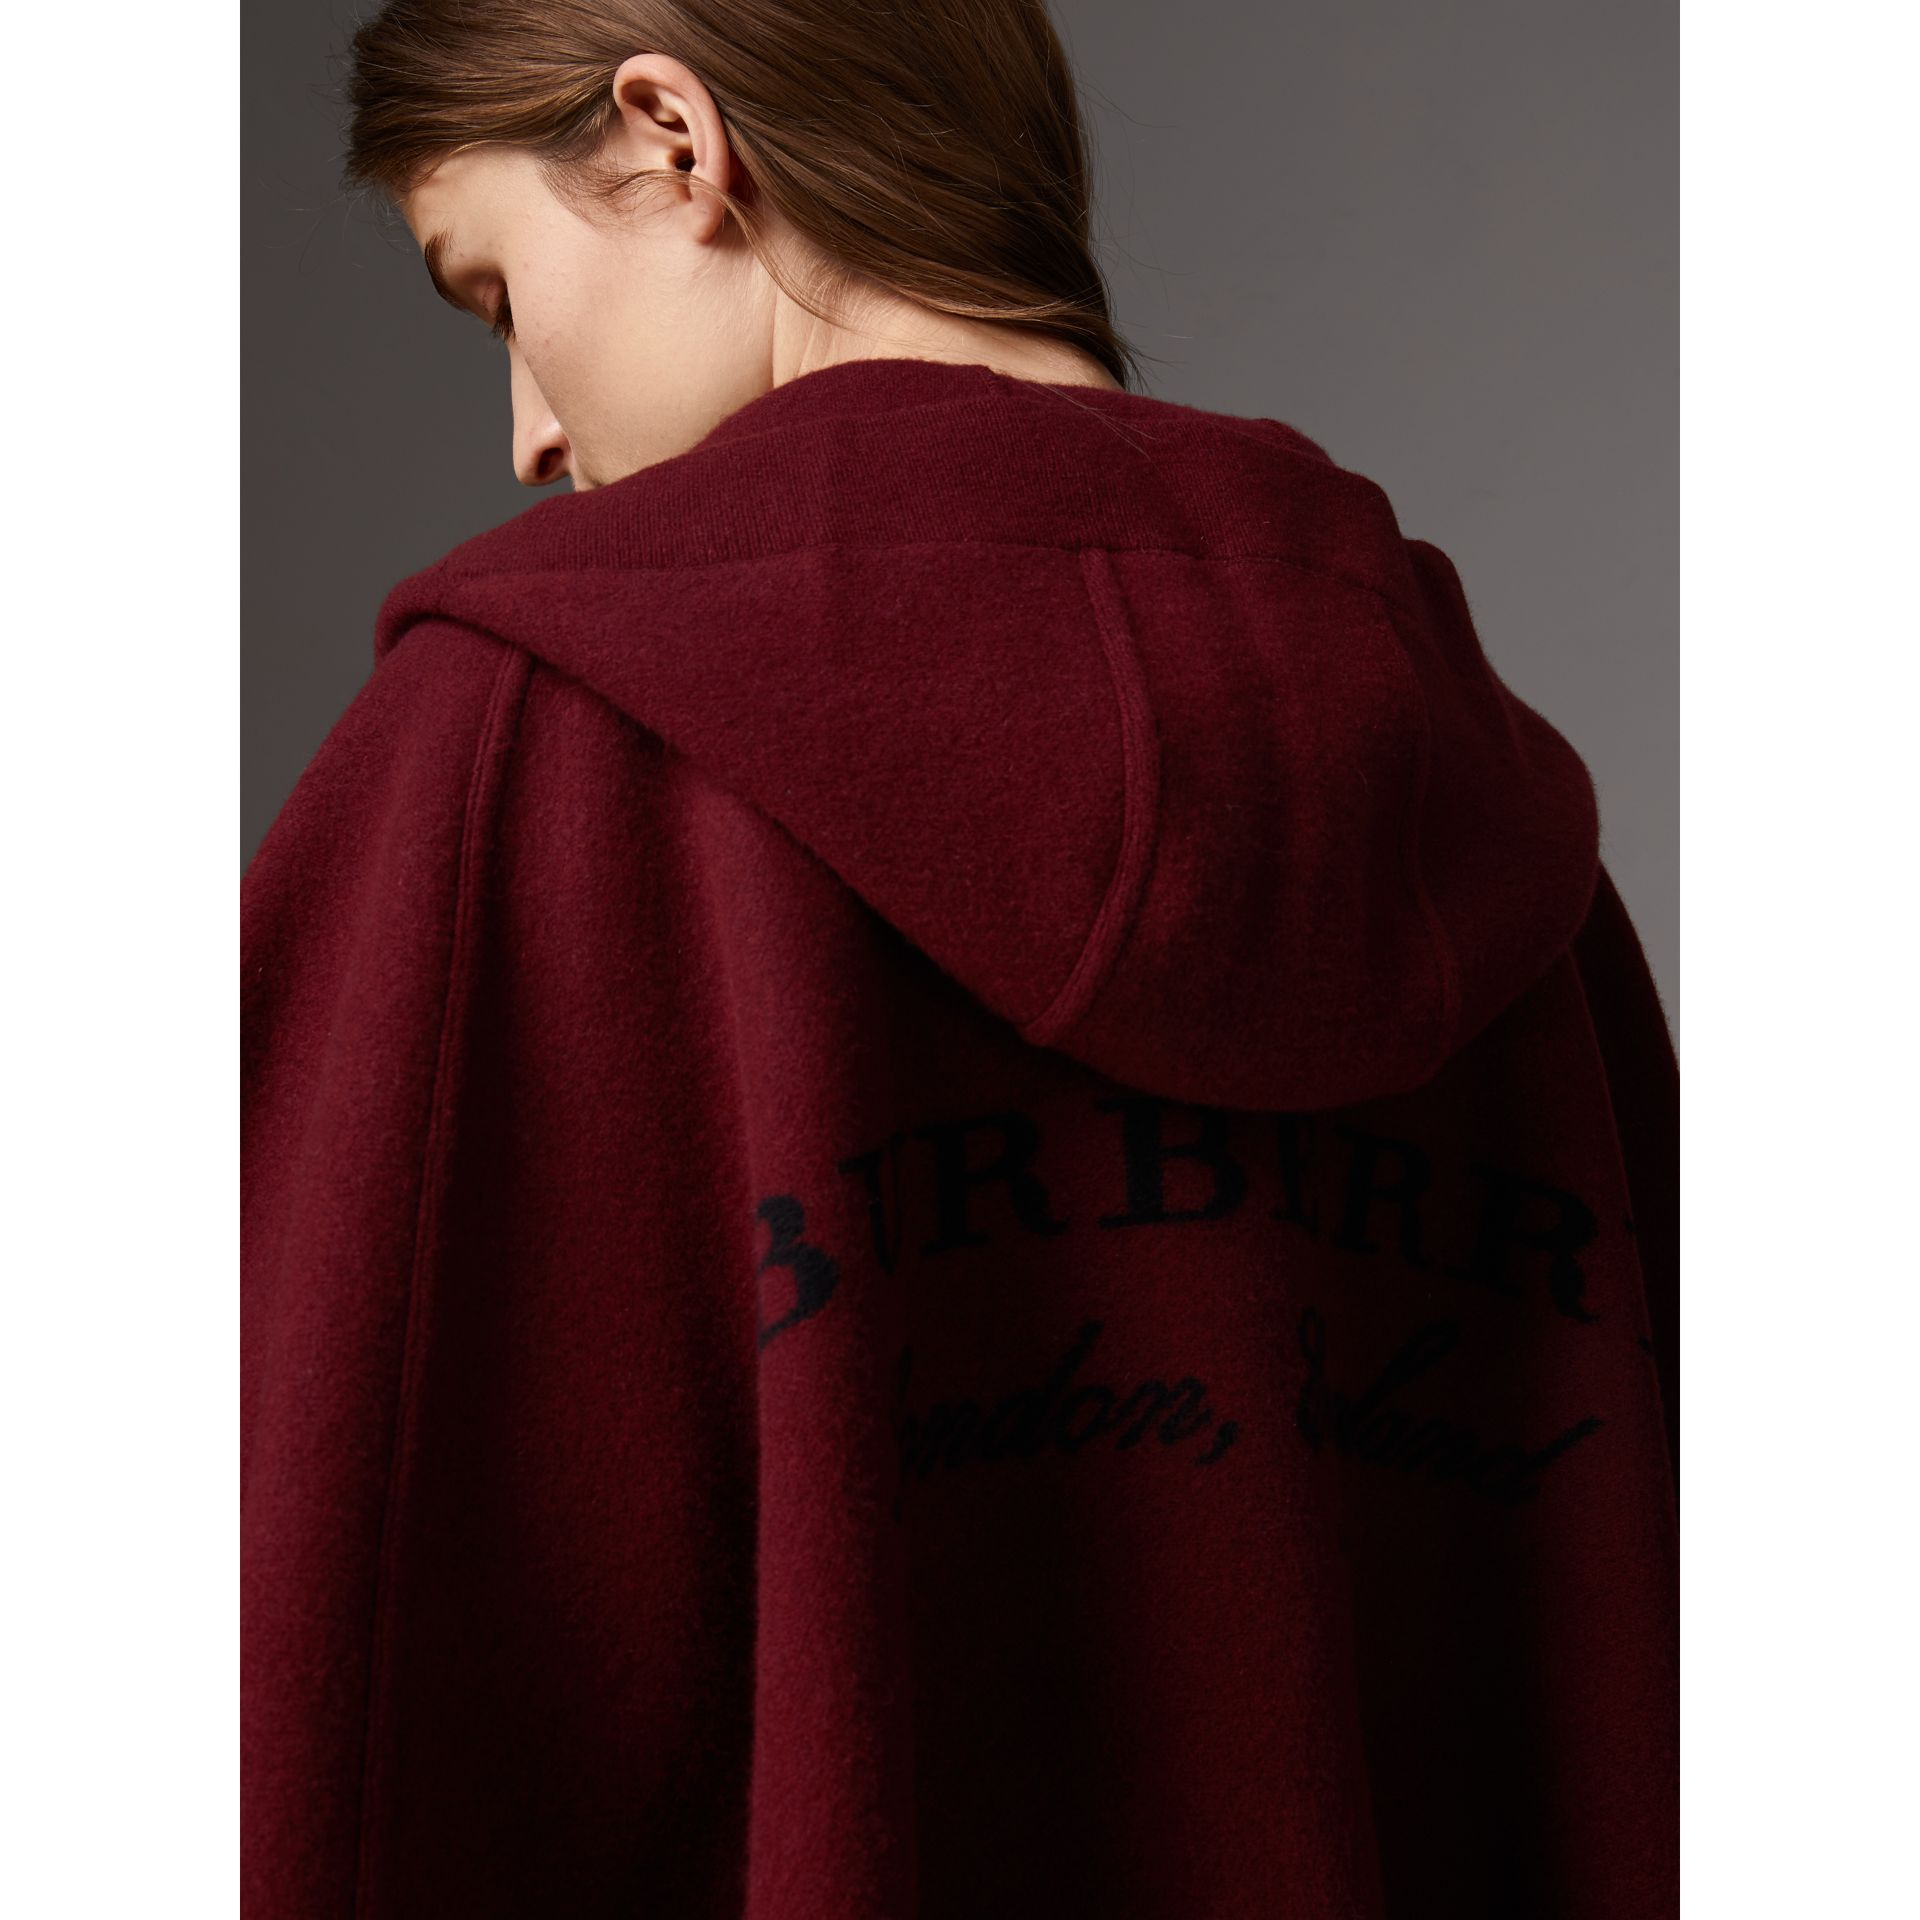 Wool Cashmere Blend Hooded Poncho in Deep Red - Women | Burberry United States - gallery image 1